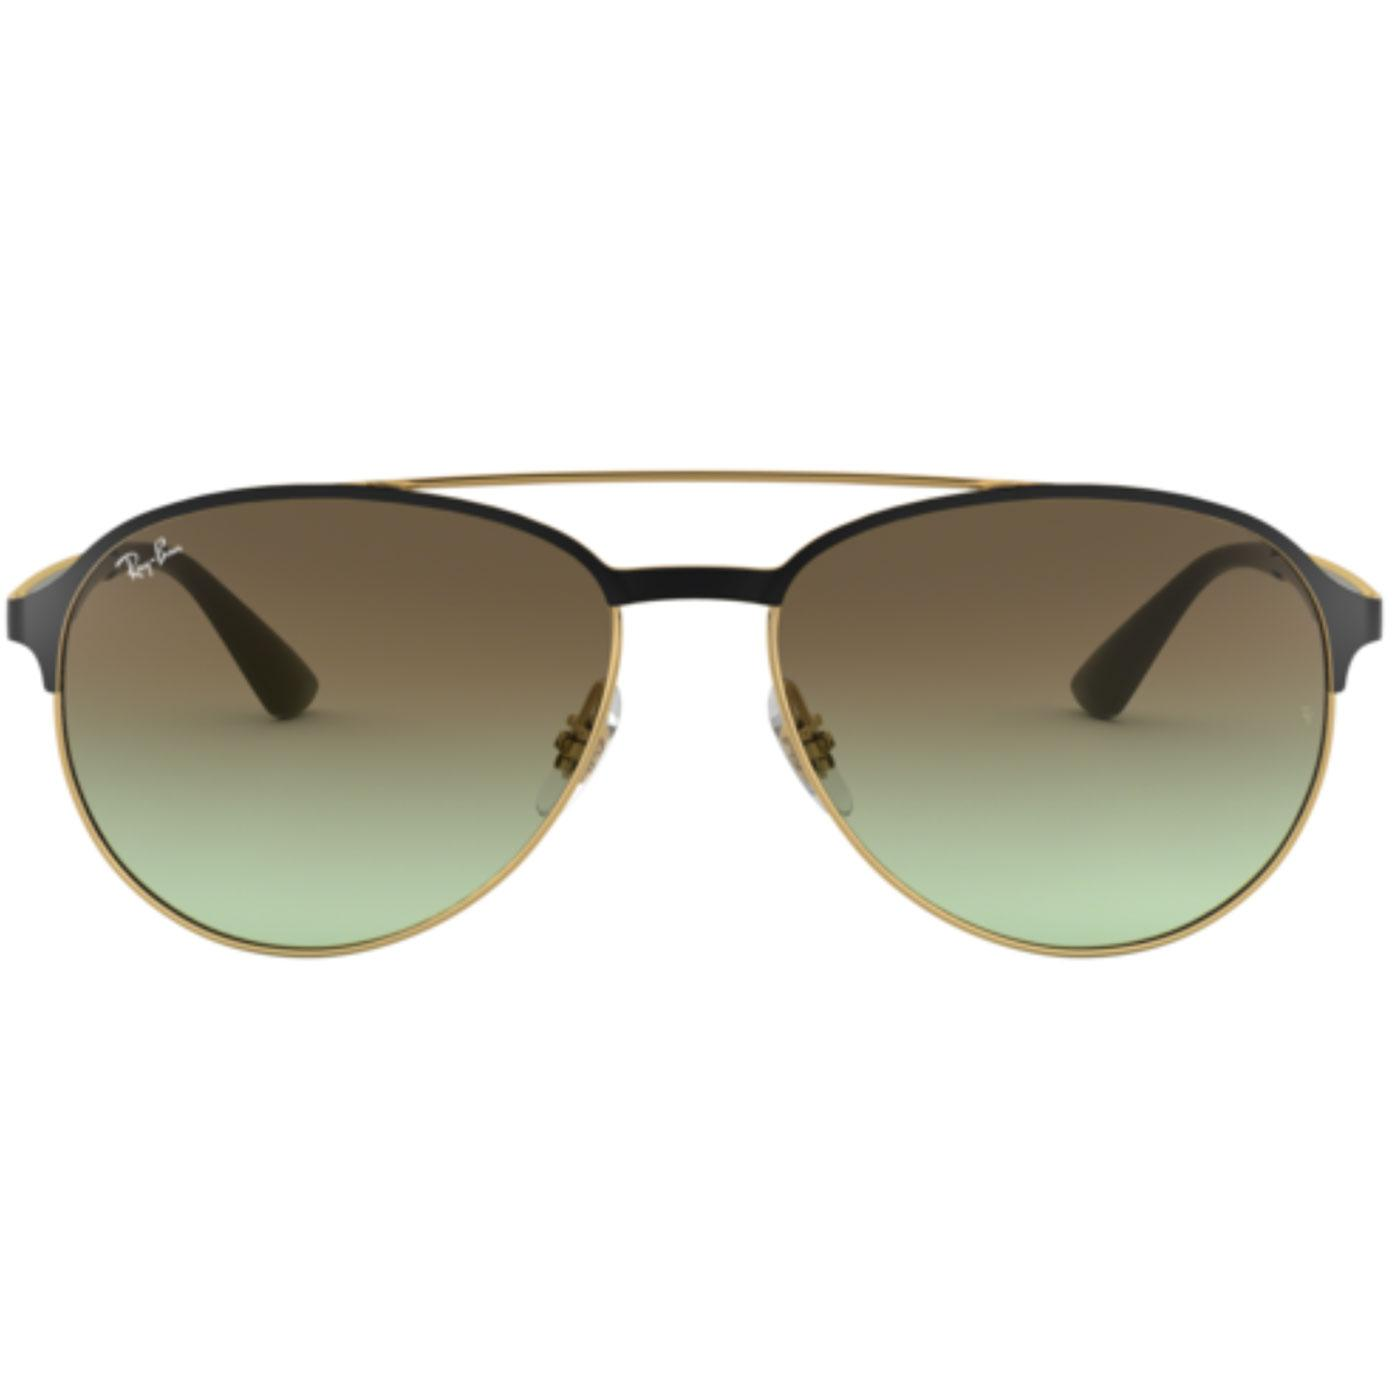 RAY-BAN Retro 70s Brow Bar Aviator Sunglasses Gold